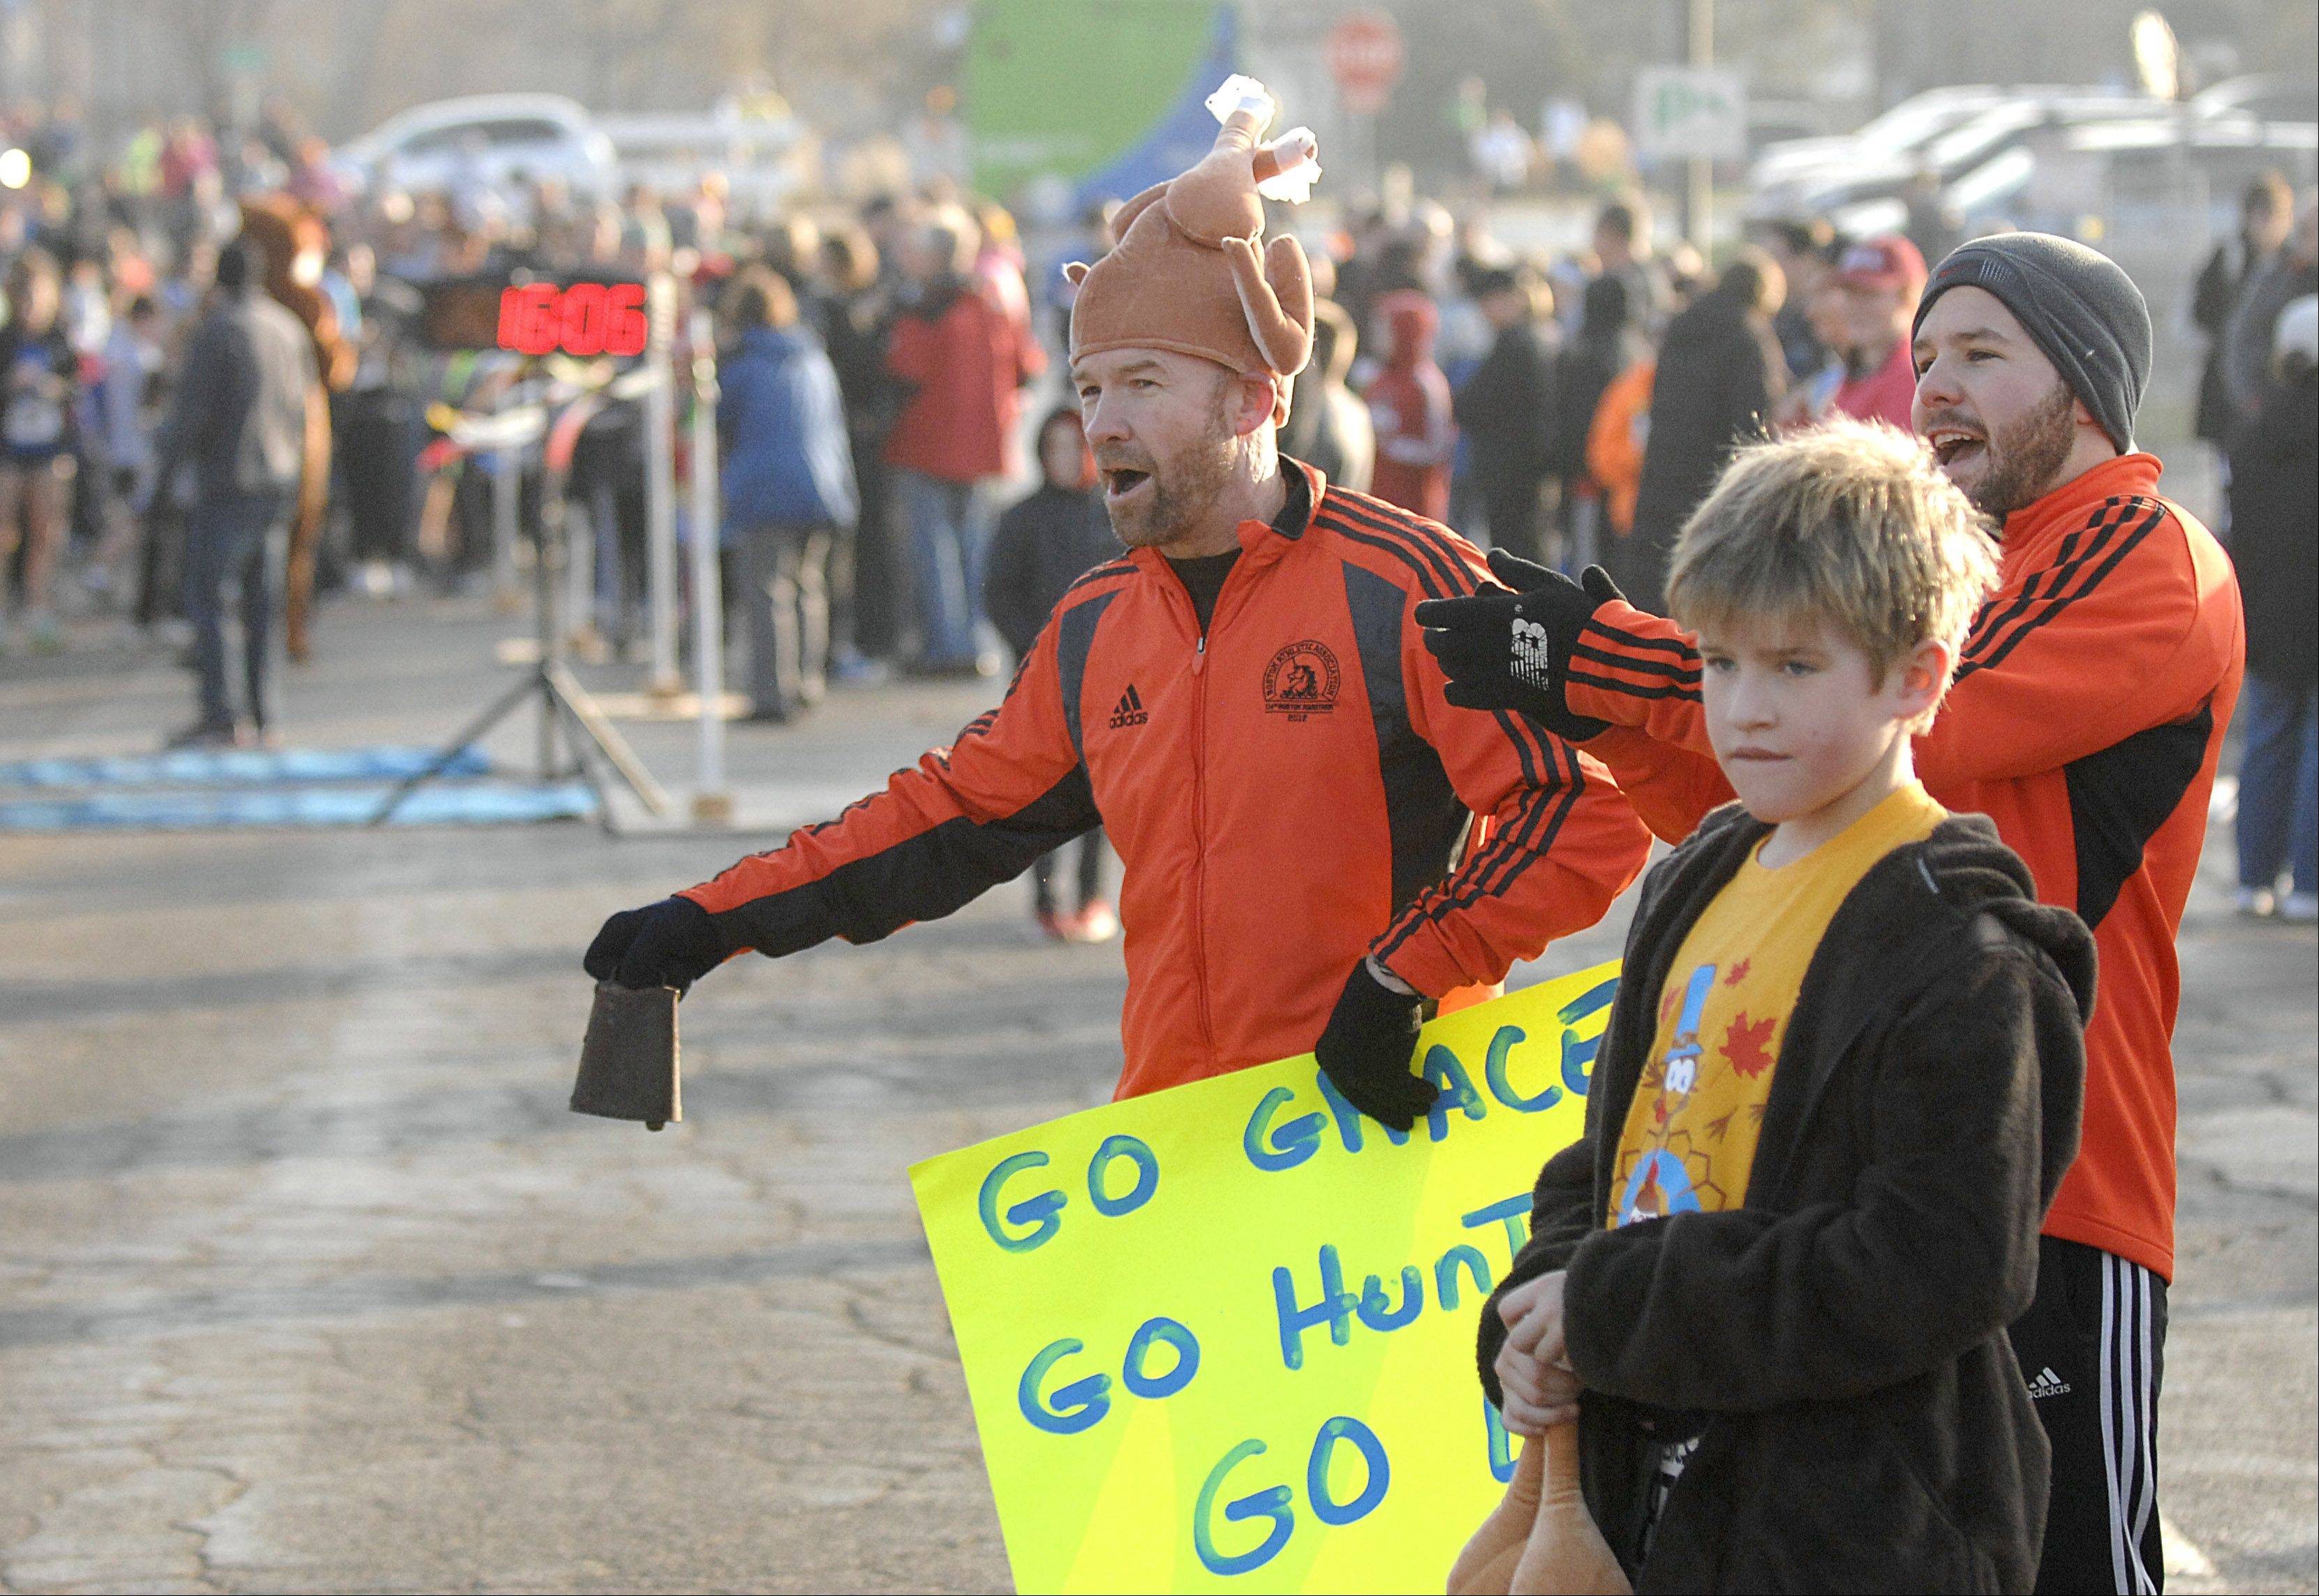 Jim Webb of St. Charles cheers runners in the youth division as they near the finish line at the 16th annual Fox & Turkey 4-mile run in Batavia on Thanksgiving Day.